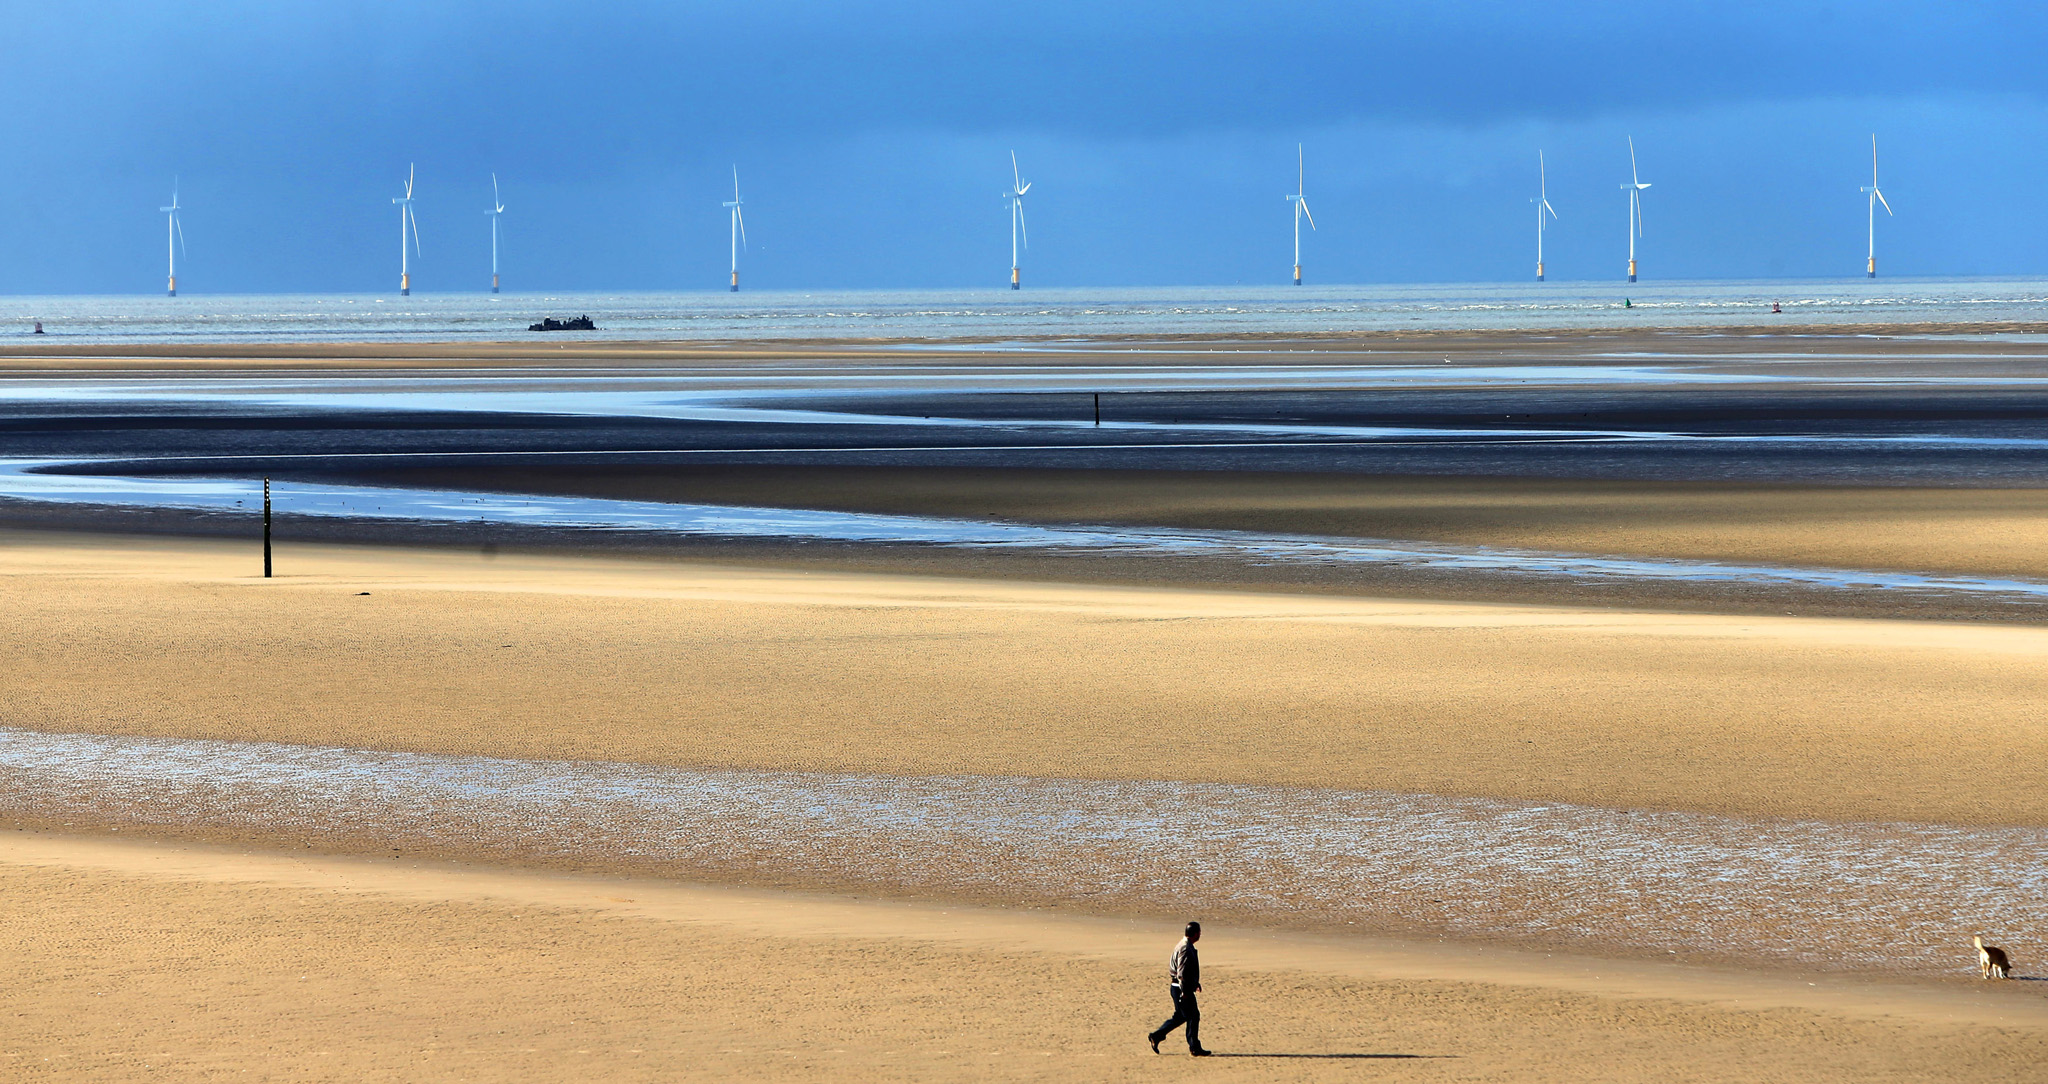 Spring weather March 24th 2015...A man walks his dog along Formby Beach, Merseyside, as a shipwreck can be seen in the distance. PRESS ASSOCIATION Photo. Picture date: Tuesday March 24, 2015. Photo credit should read: Peter Byrne/PA Wire